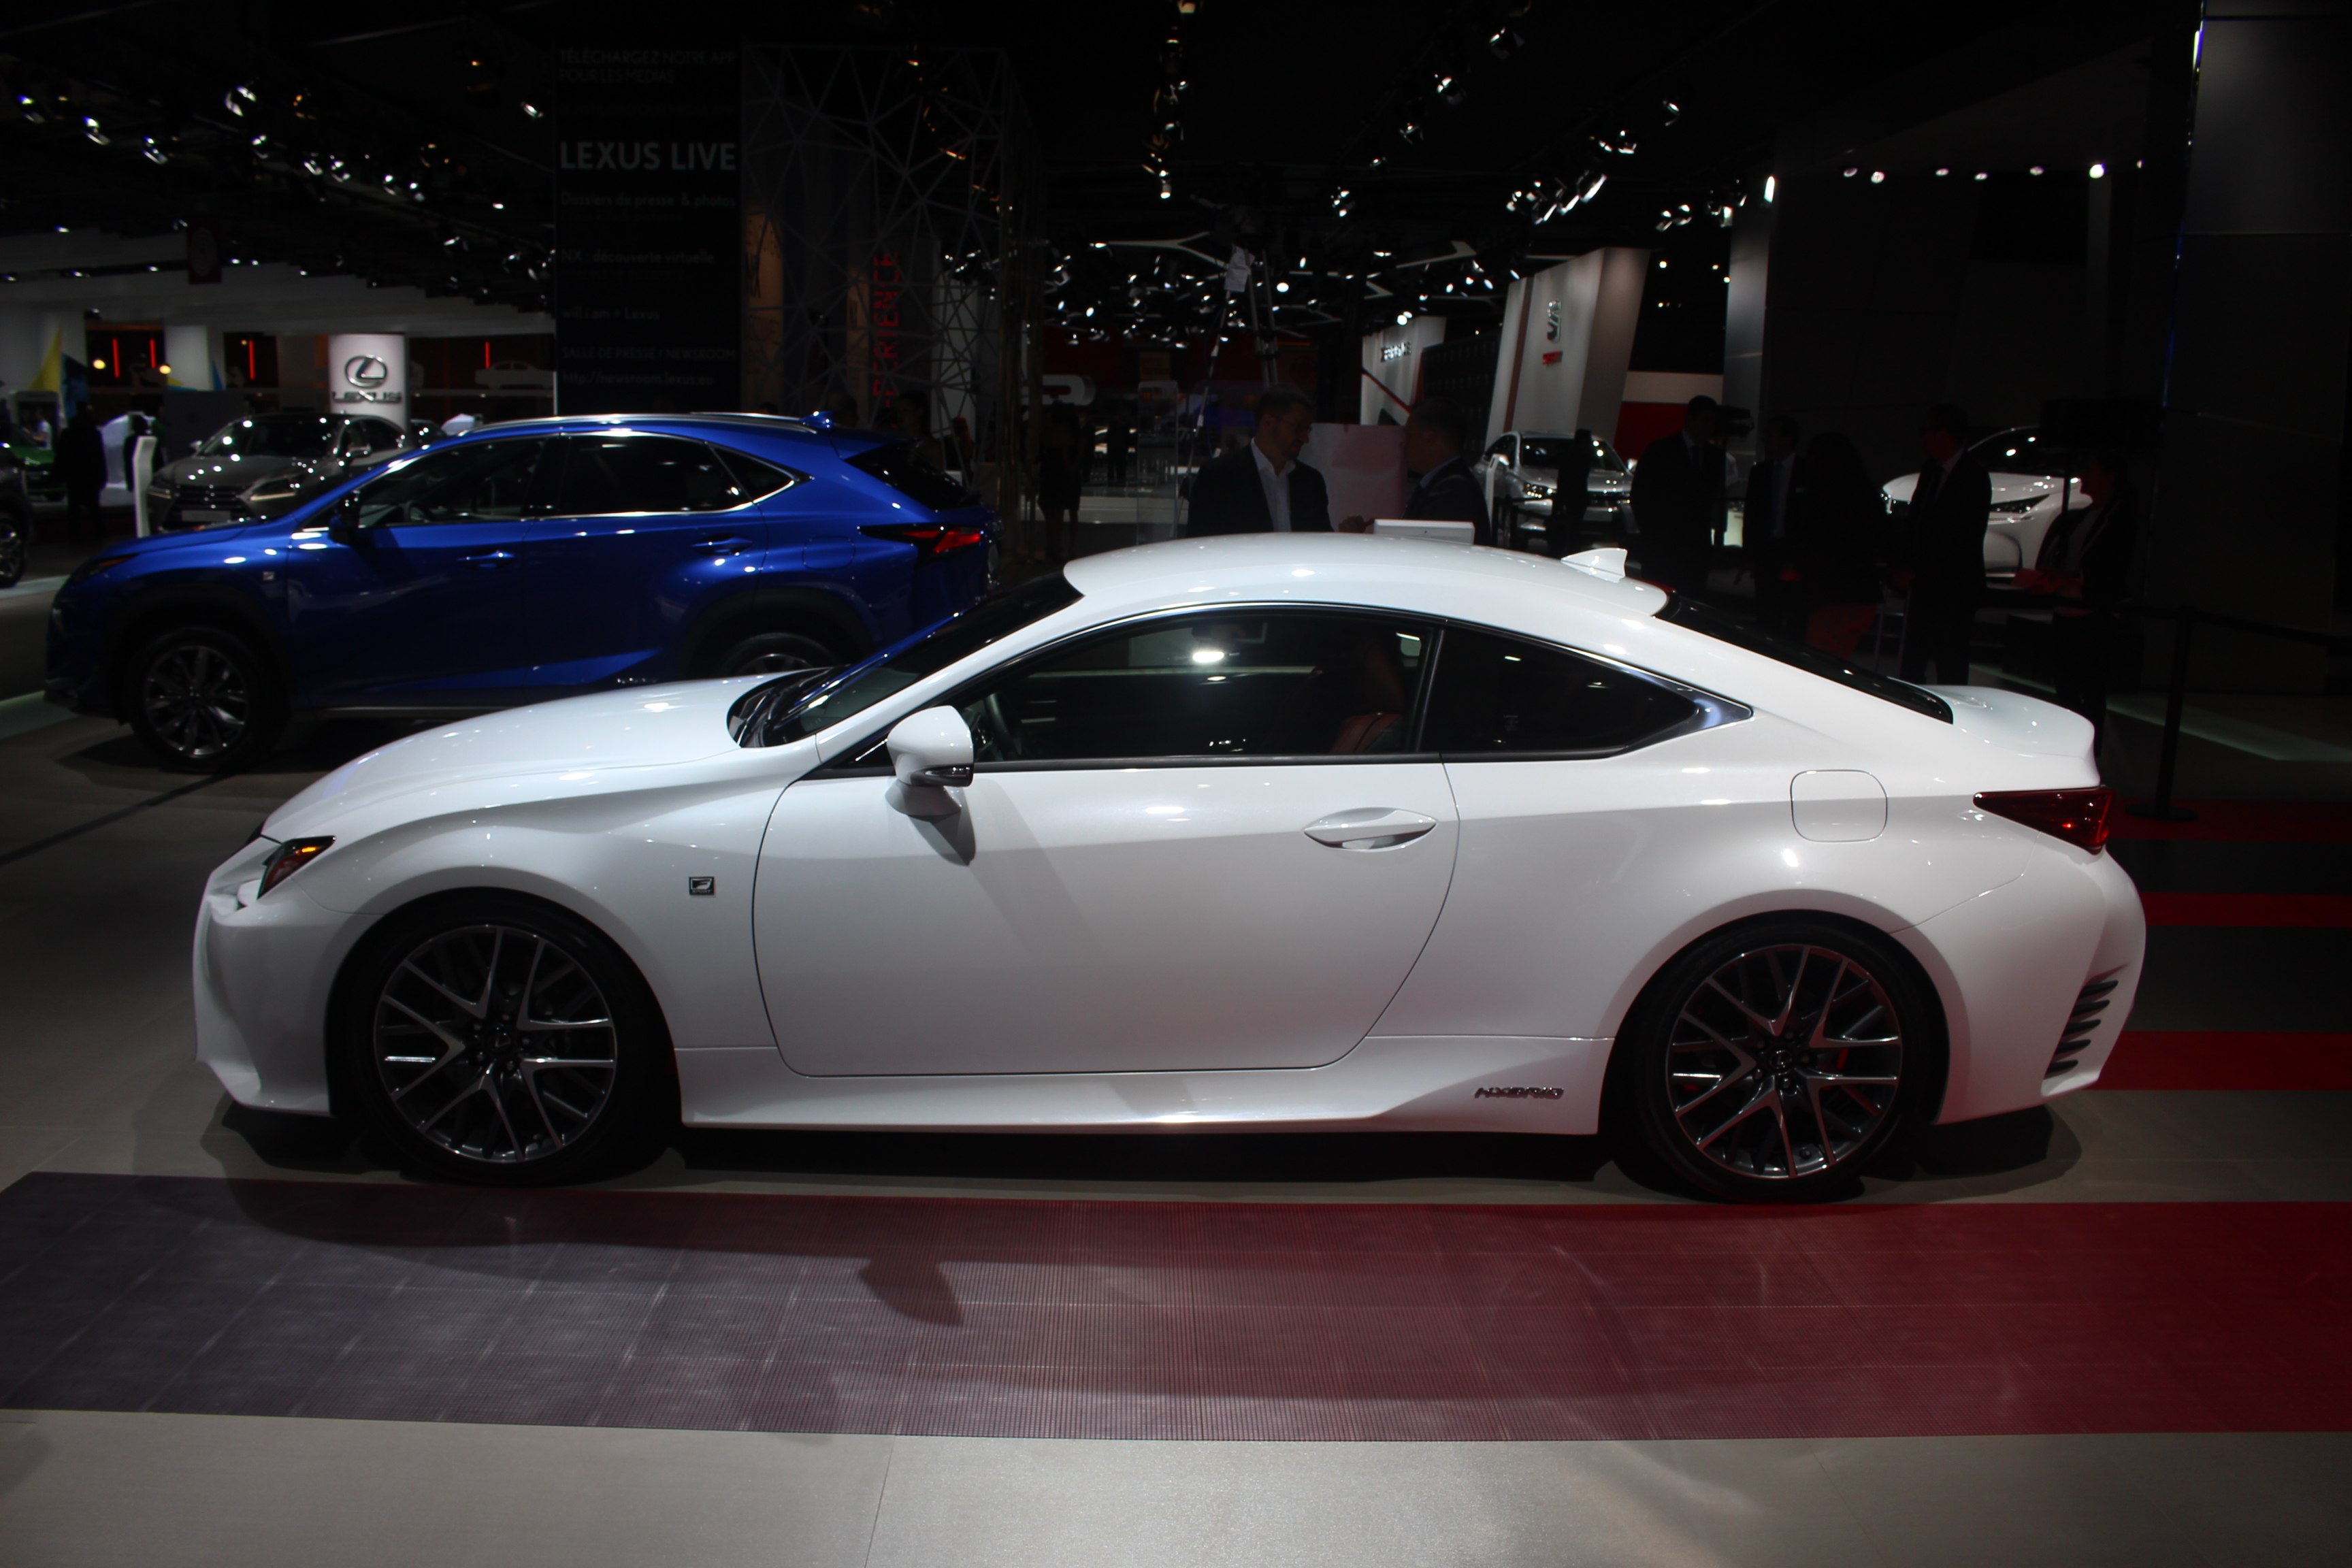 lexus rc 300 h soft en direct du salon de paris 2014. Black Bedroom Furniture Sets. Home Design Ideas